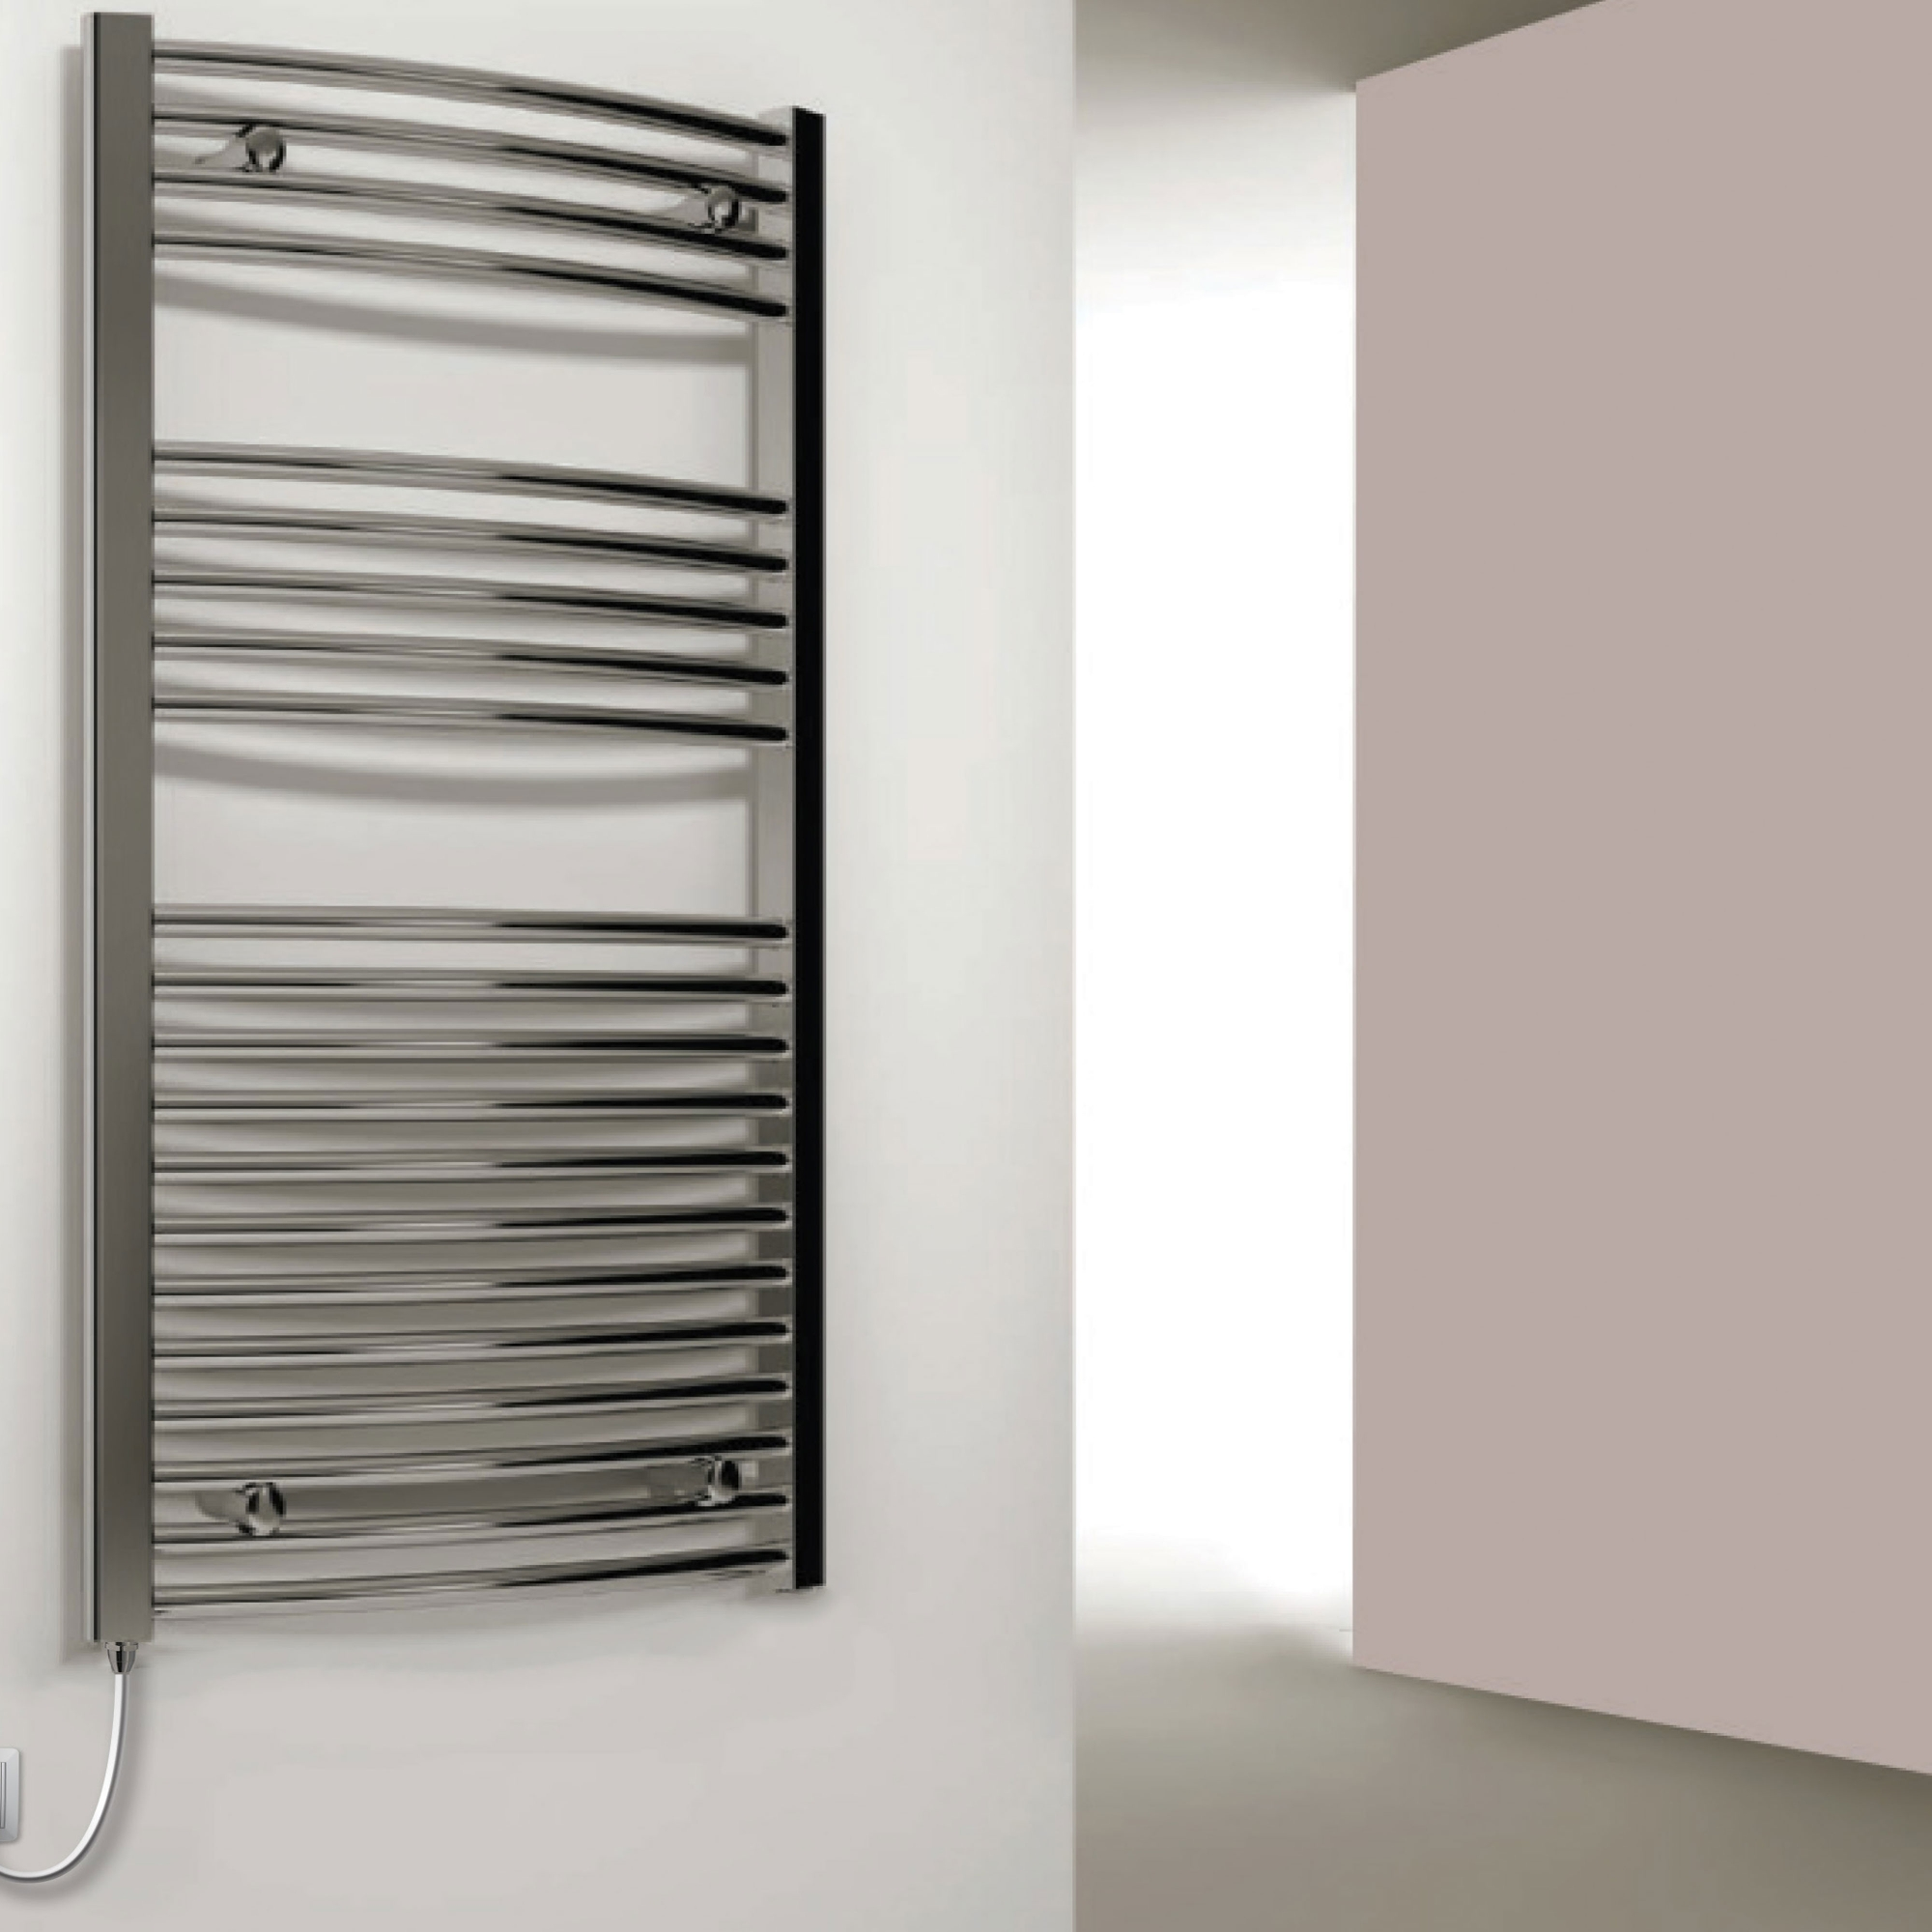 Reina Capo Curved Thermostatic Electric Heated Towel Rail 1600mm H x 400mm W Chrome